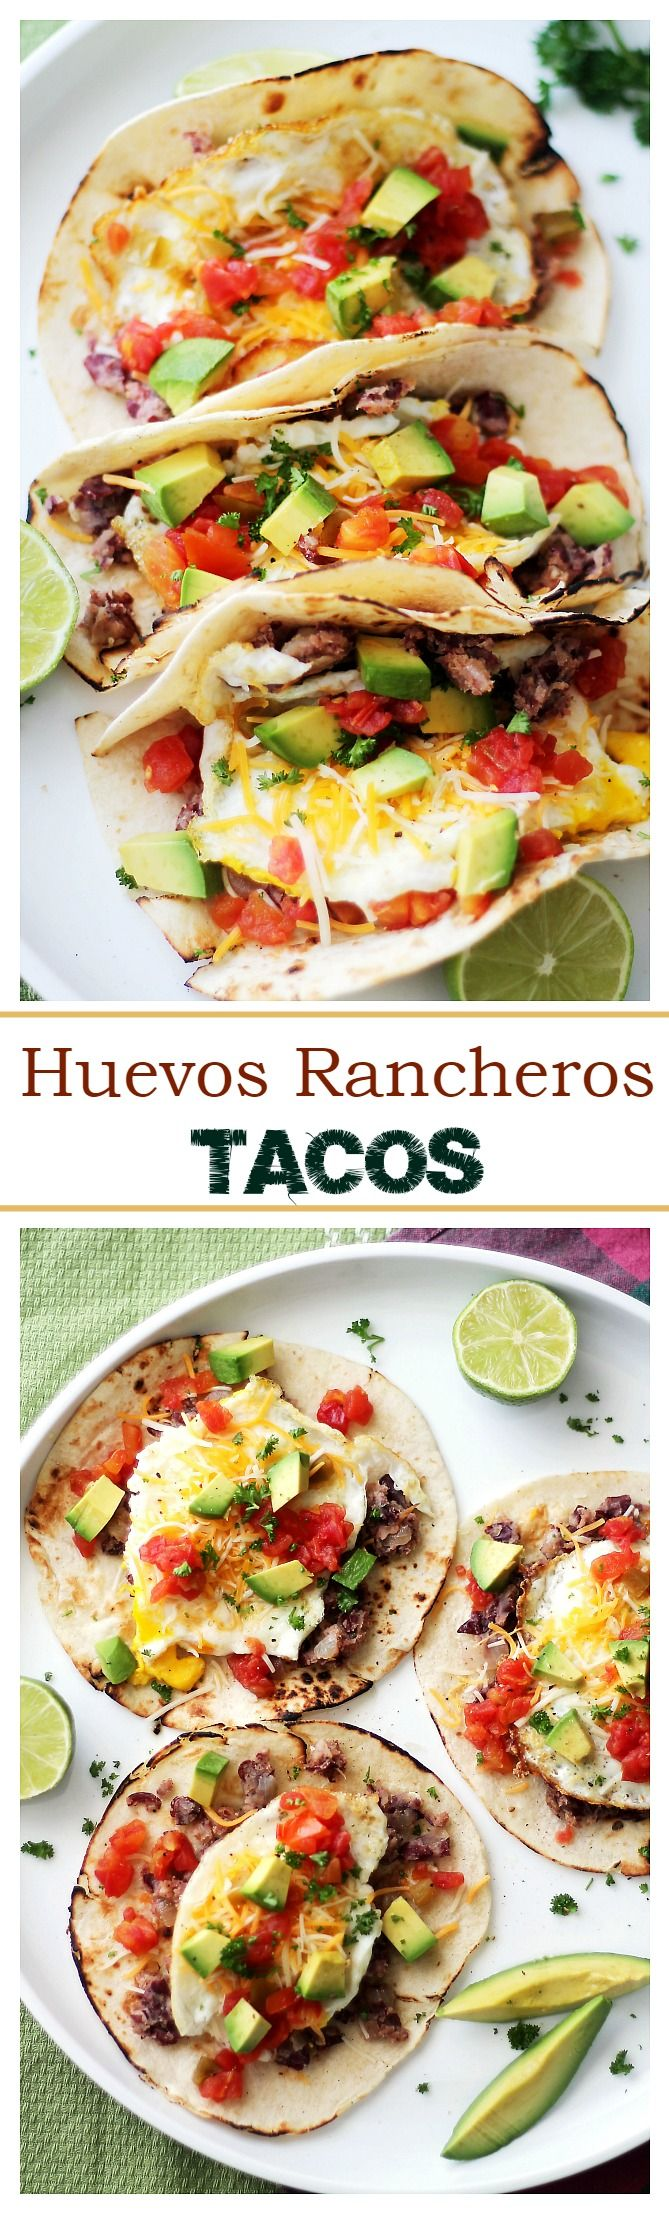 Huevos Rancheros Tacos - Soft tortillas stuffed with homemade refried beans, eggs, green chilies, tomatoes, cheese and diced avocados. Simple and incredibly delicious!